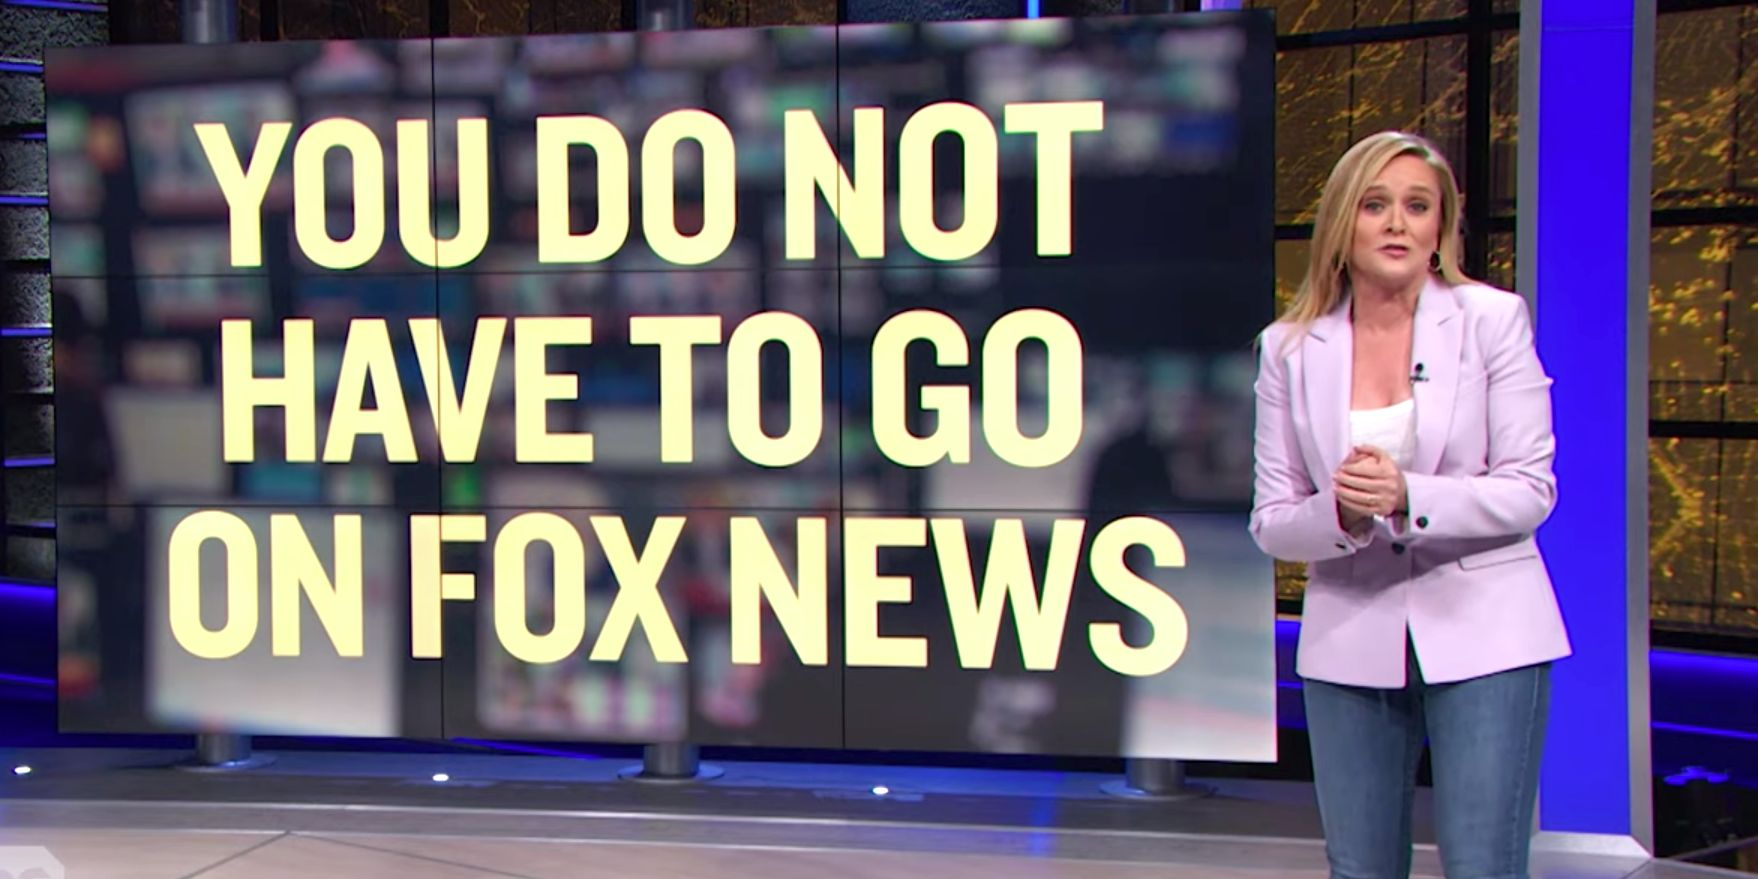 Samantha Bee Sends Blistering Message To Democrats About Fox Information